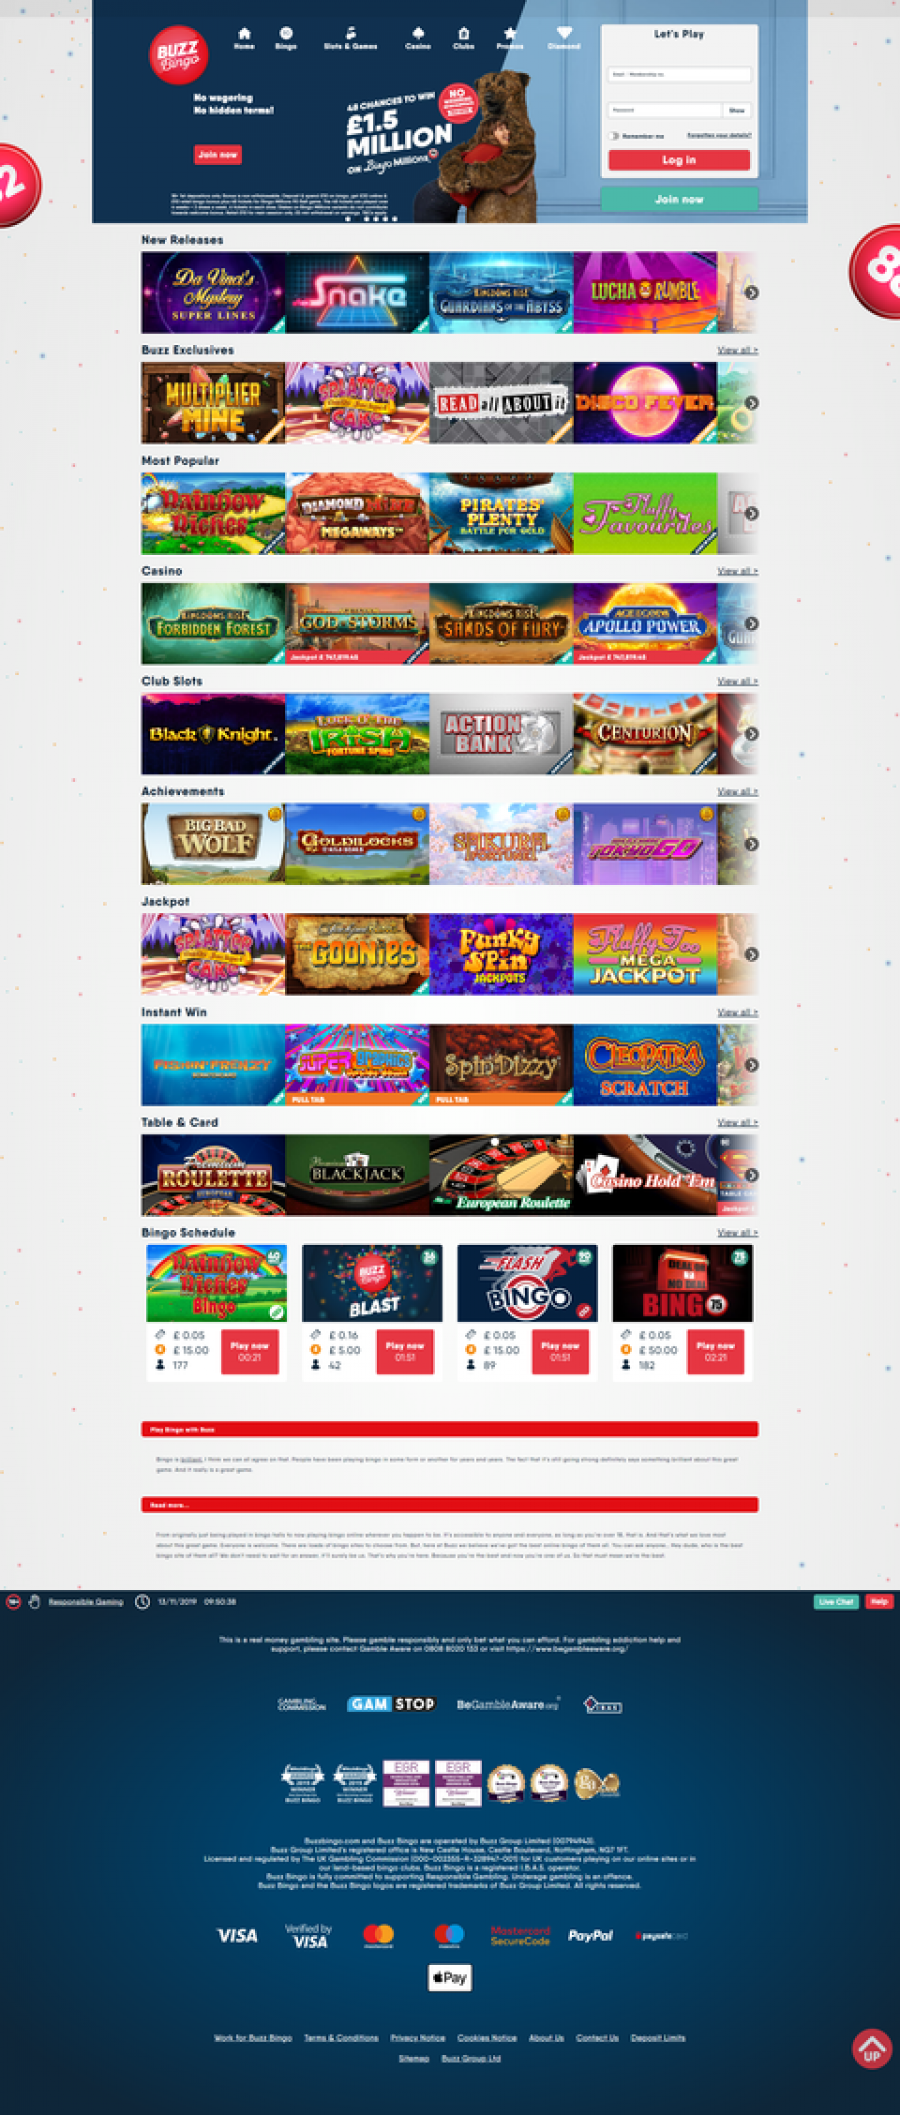 Buzz Bingo Casino  screenshot